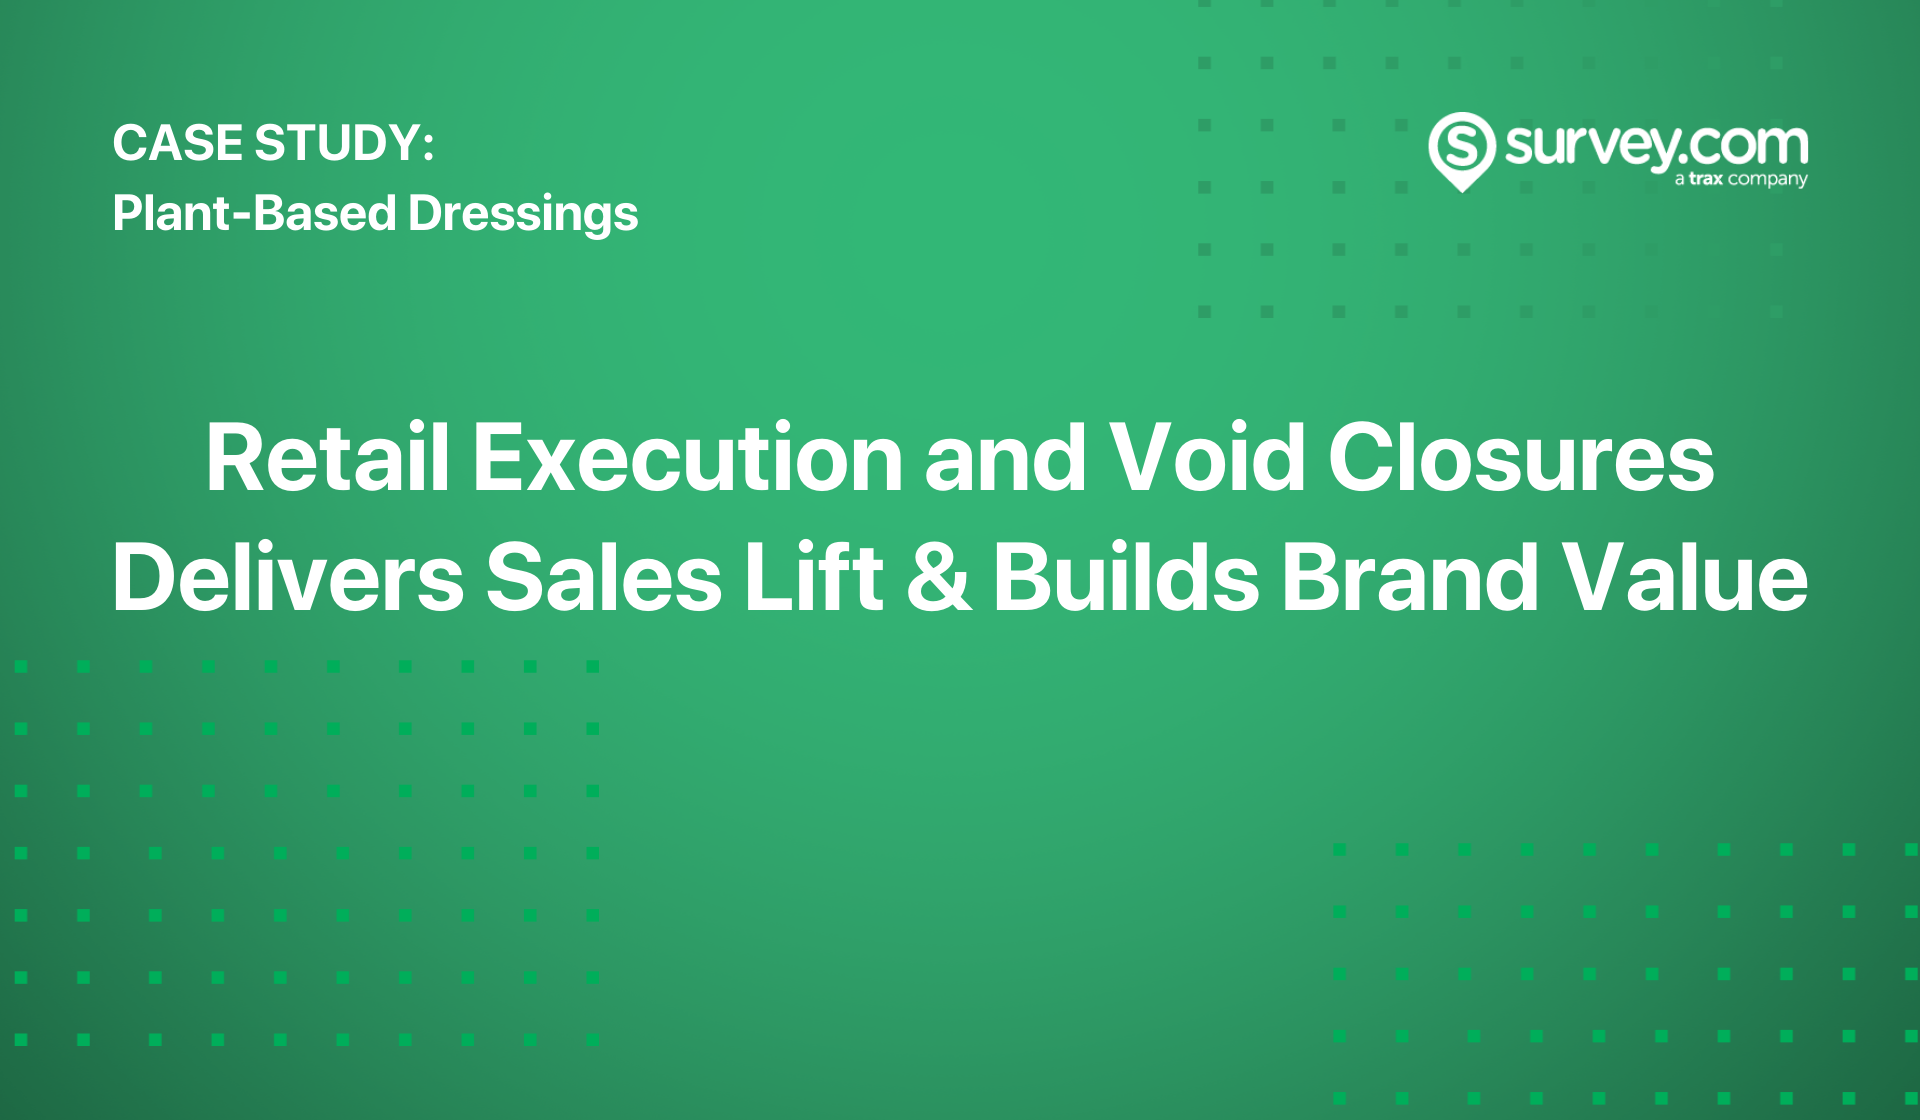 CaseStudy Plant-Based Dressing Retail Execution and Void Closures